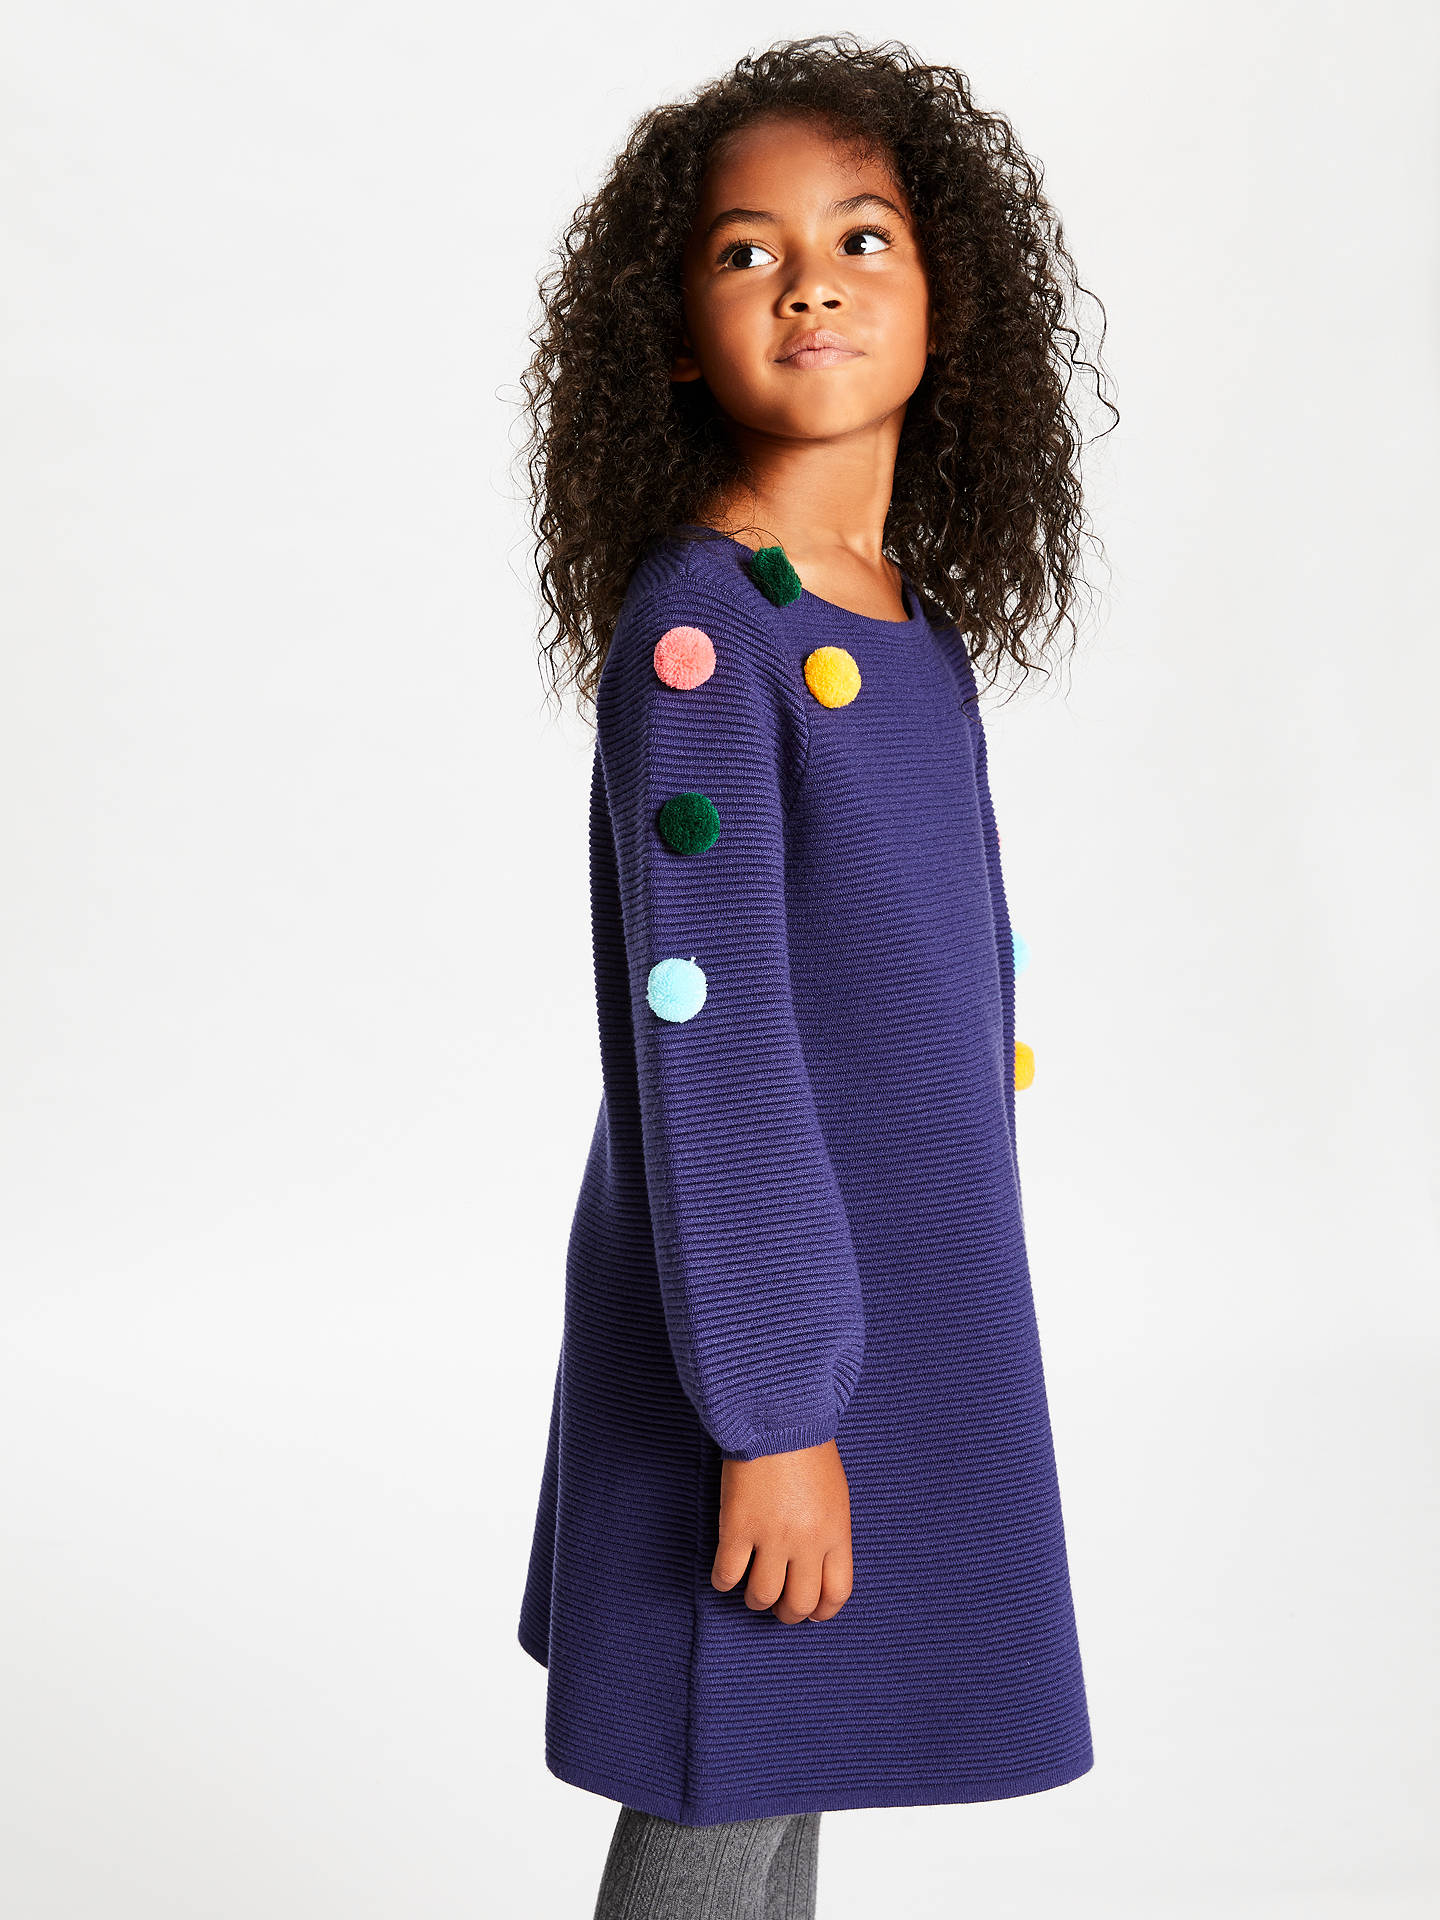 Buy John Lewis & Partners Girls' Pom Pom Knitted Dress, Navy, 4 years Online at johnlewis.com